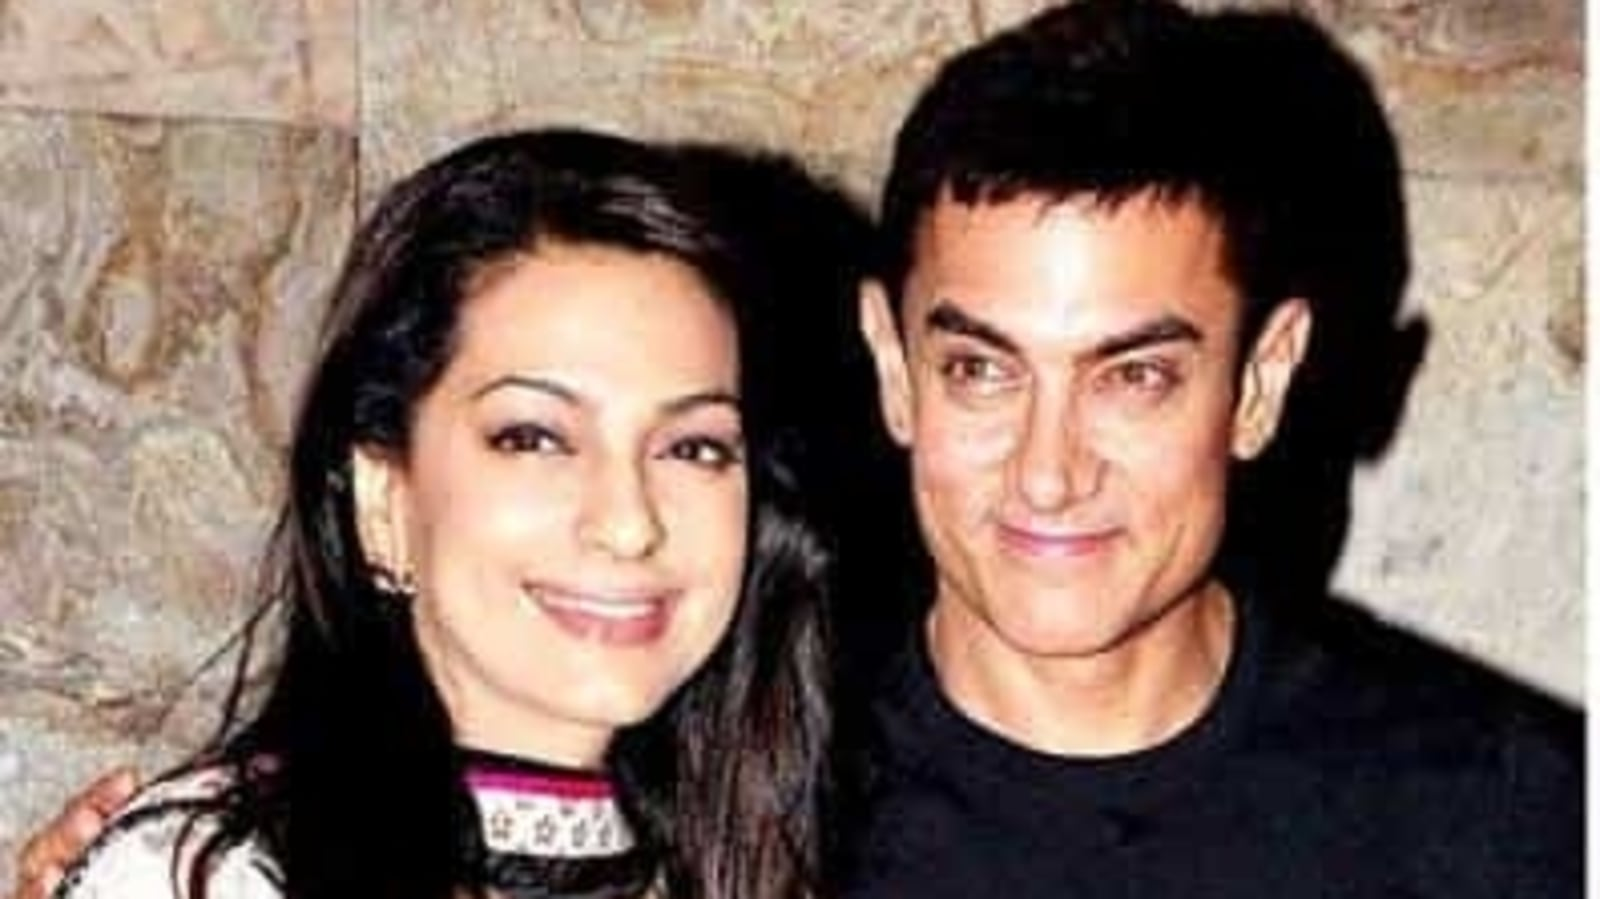 When Aamir Khan and Juhi Chawla didn't speak for 6-7 years because of 'petty issue', patched up after his divorce - Hindustan Times